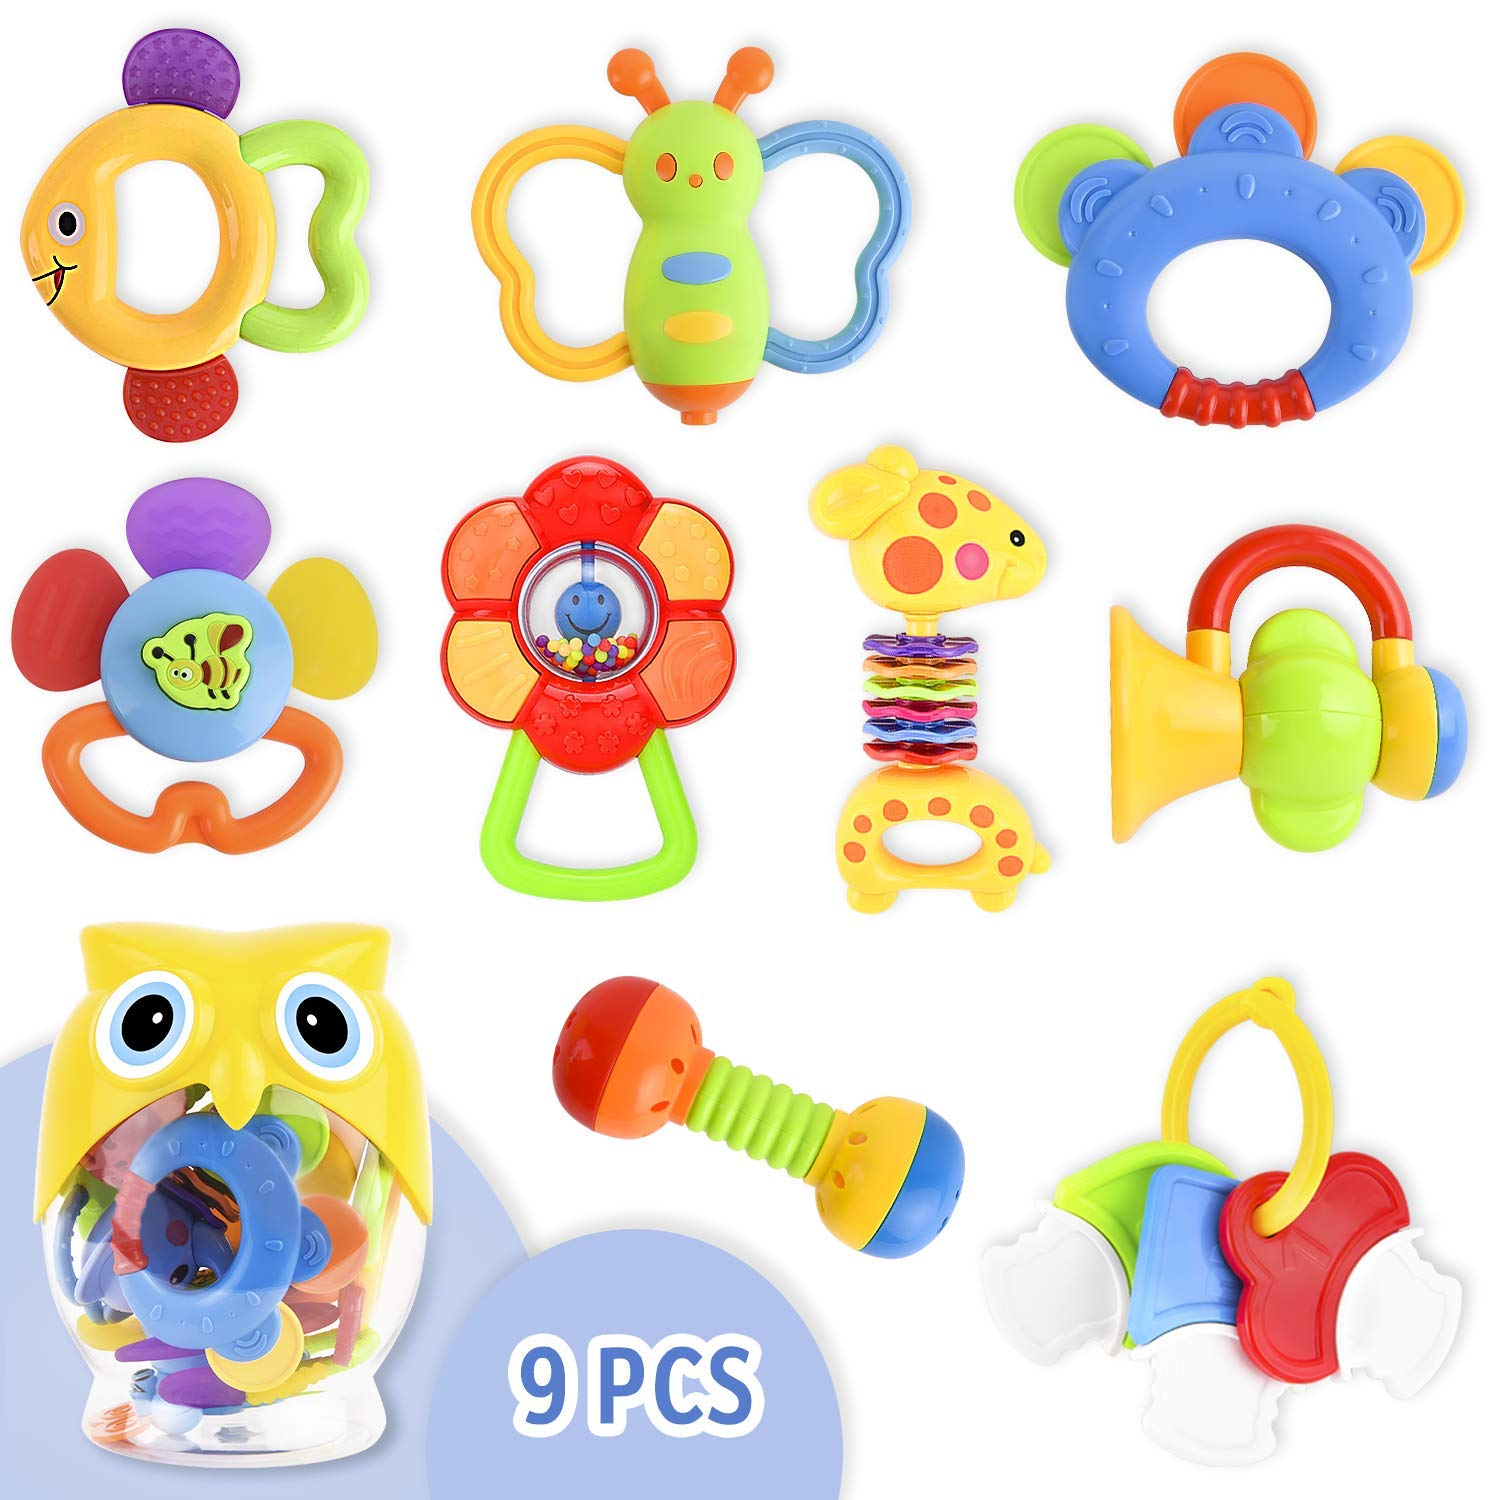 9 Pcs Toys for Infants Baby Rattle Teether Toy Set, Baby Mouth Toys Shake  and Grab Rattle Musical Toys with Owl Storage Bottle Baby First Rattle and.